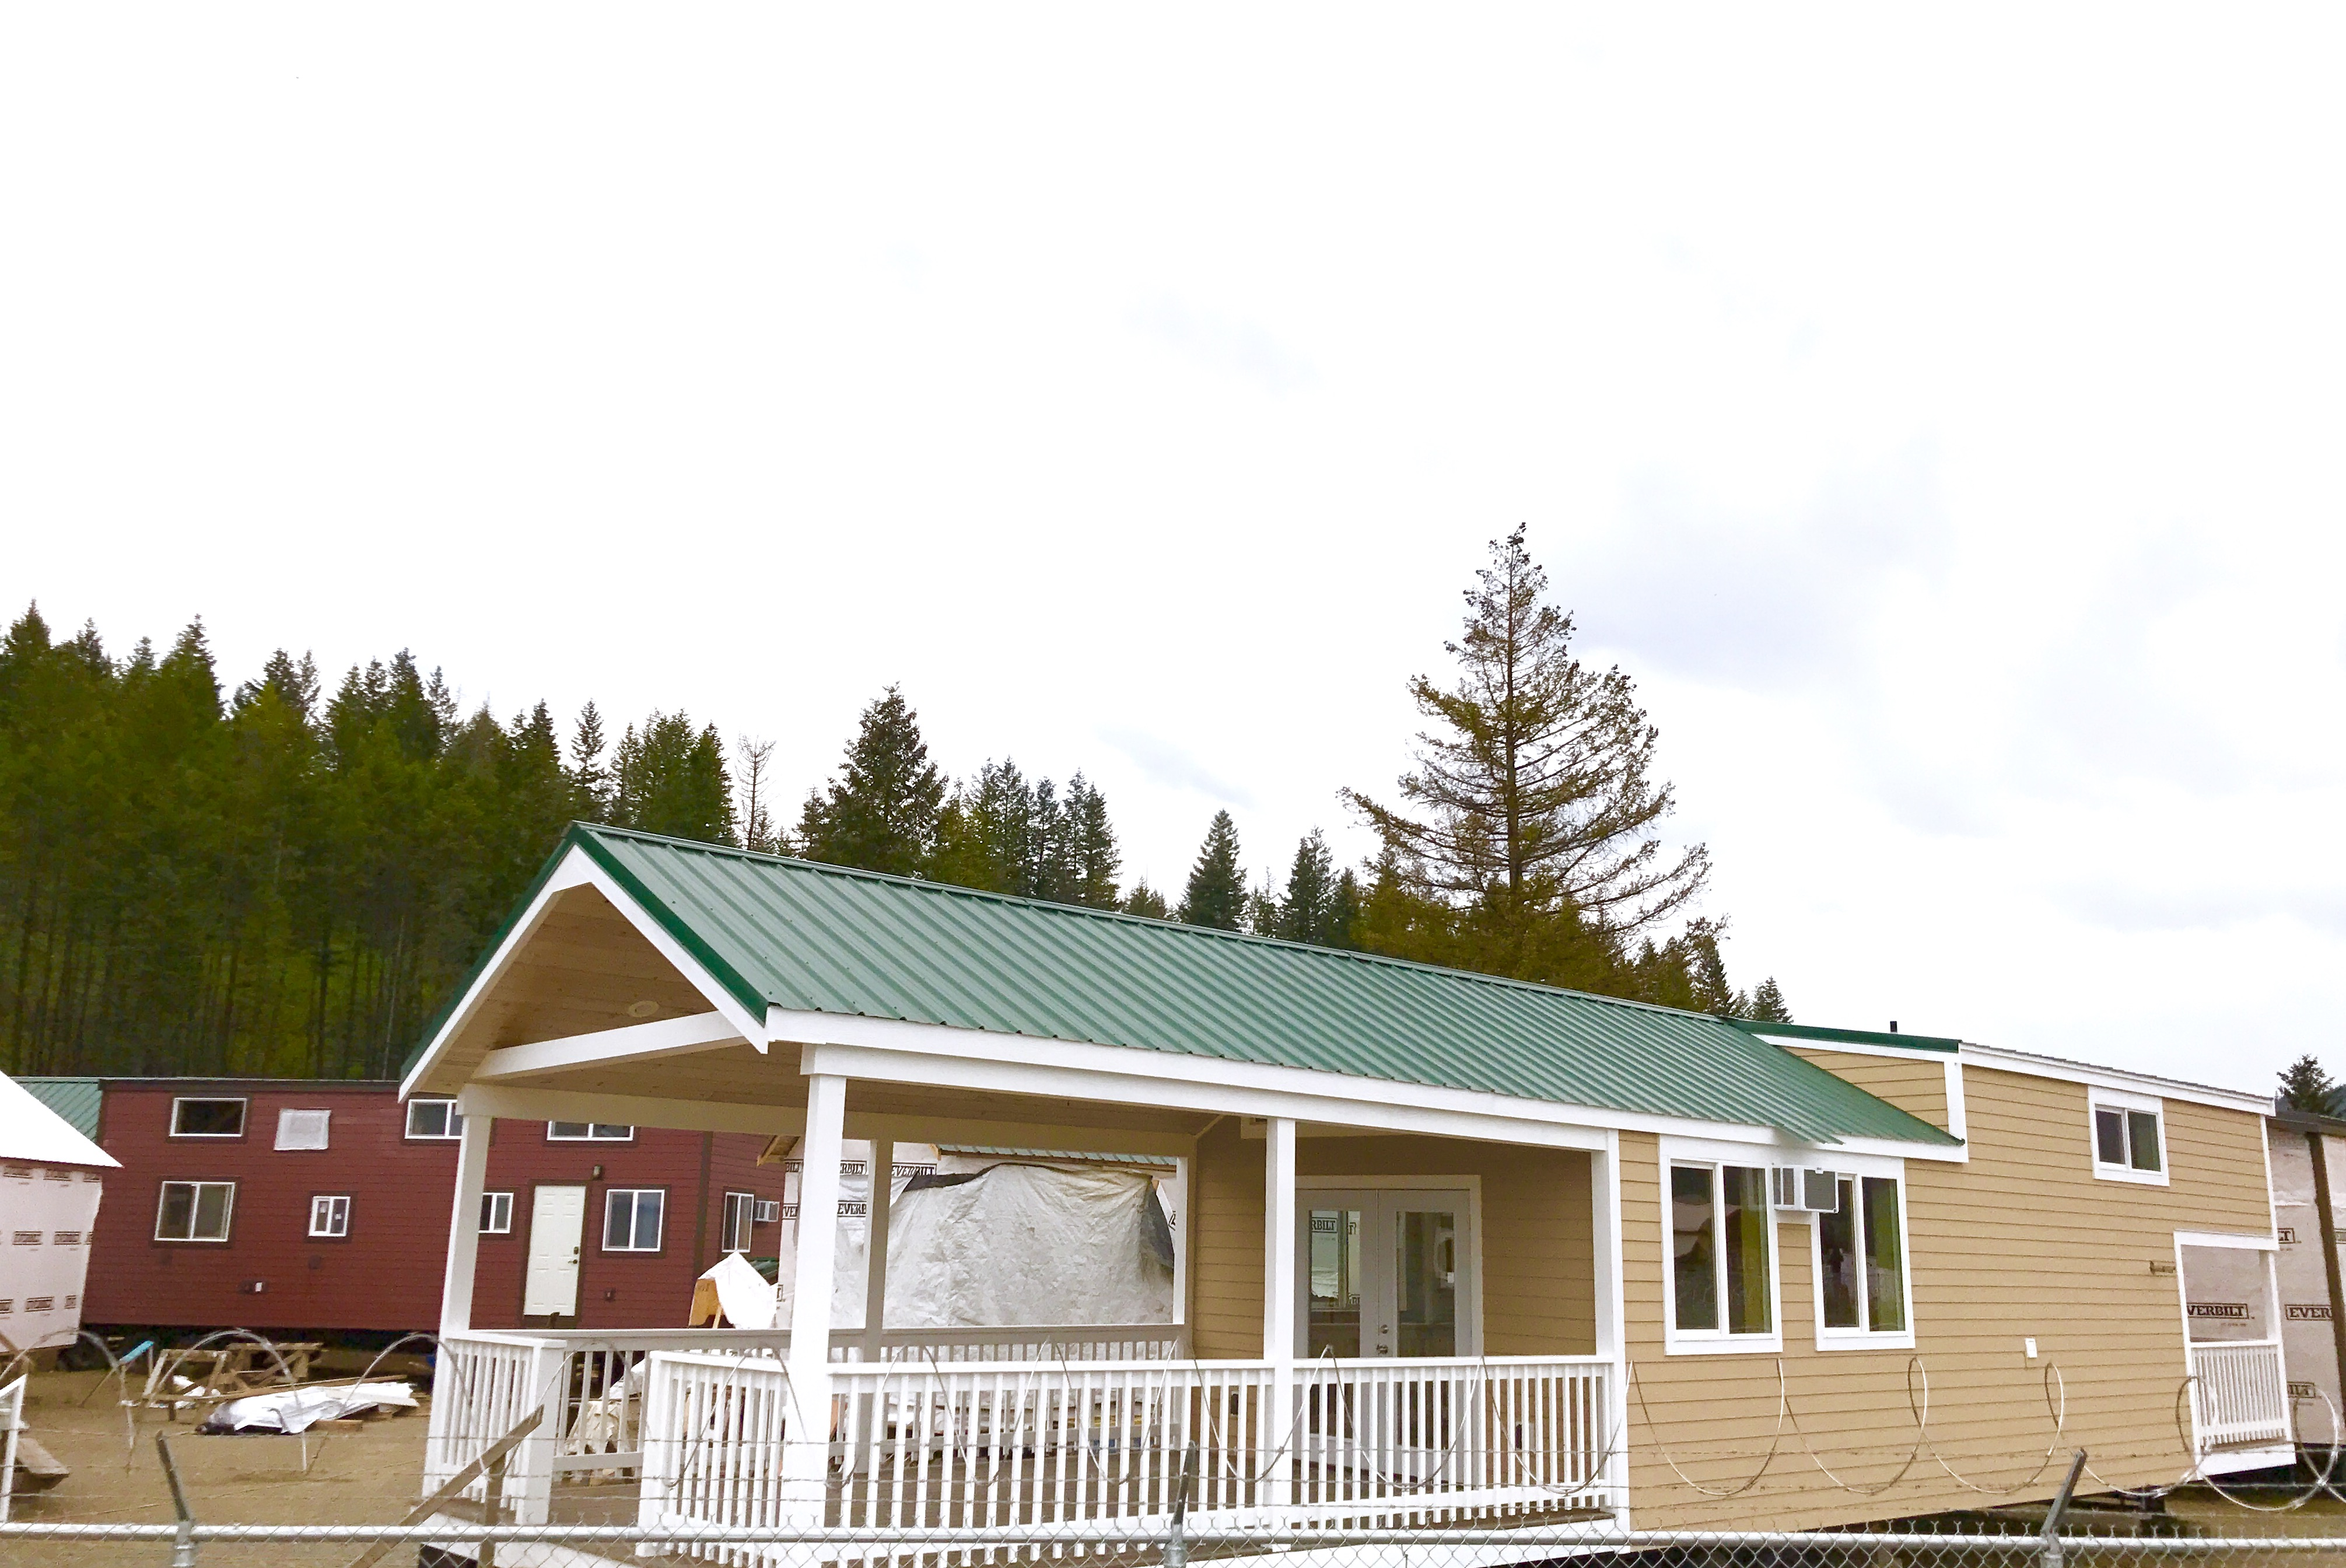 The Lake View Extended : 14' X 28' With Two Covered Lofts  X Tiny House Floor Plans No Loft on new york loft floor plans, tumbleweed house plans, two bedroom loft floor plans, micro house floor plans, tiny home house plans, small loft house plans, house designs with floor plans,